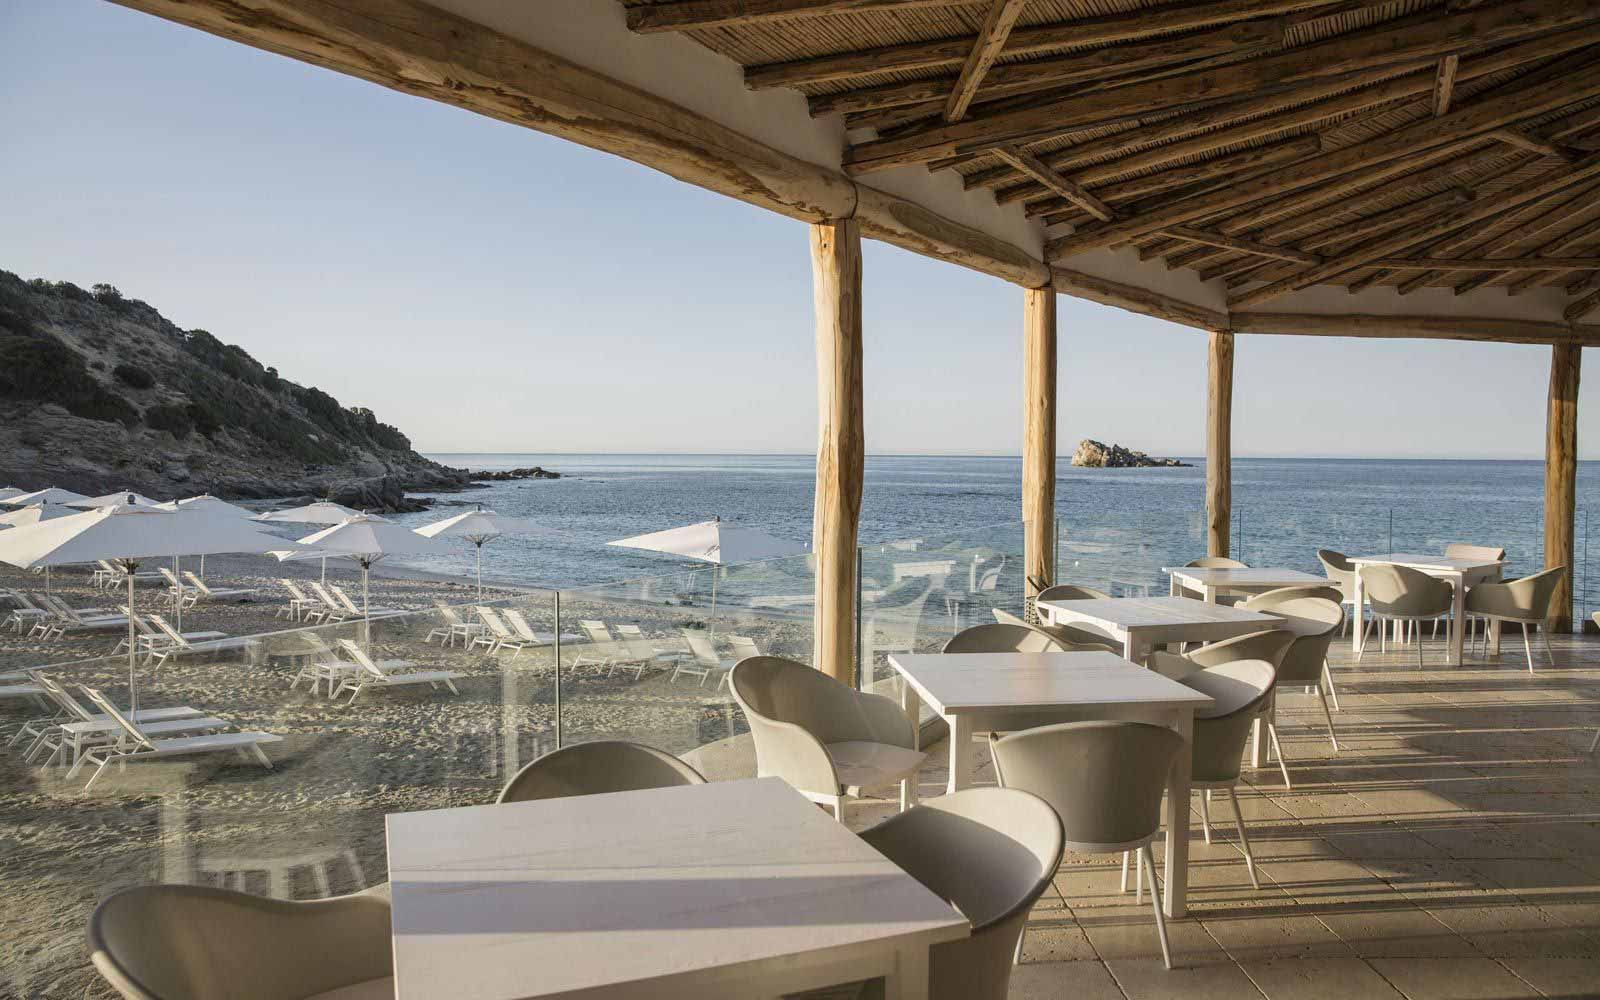 Beach Restaurant at Falkensteiner Resort Capo Boi